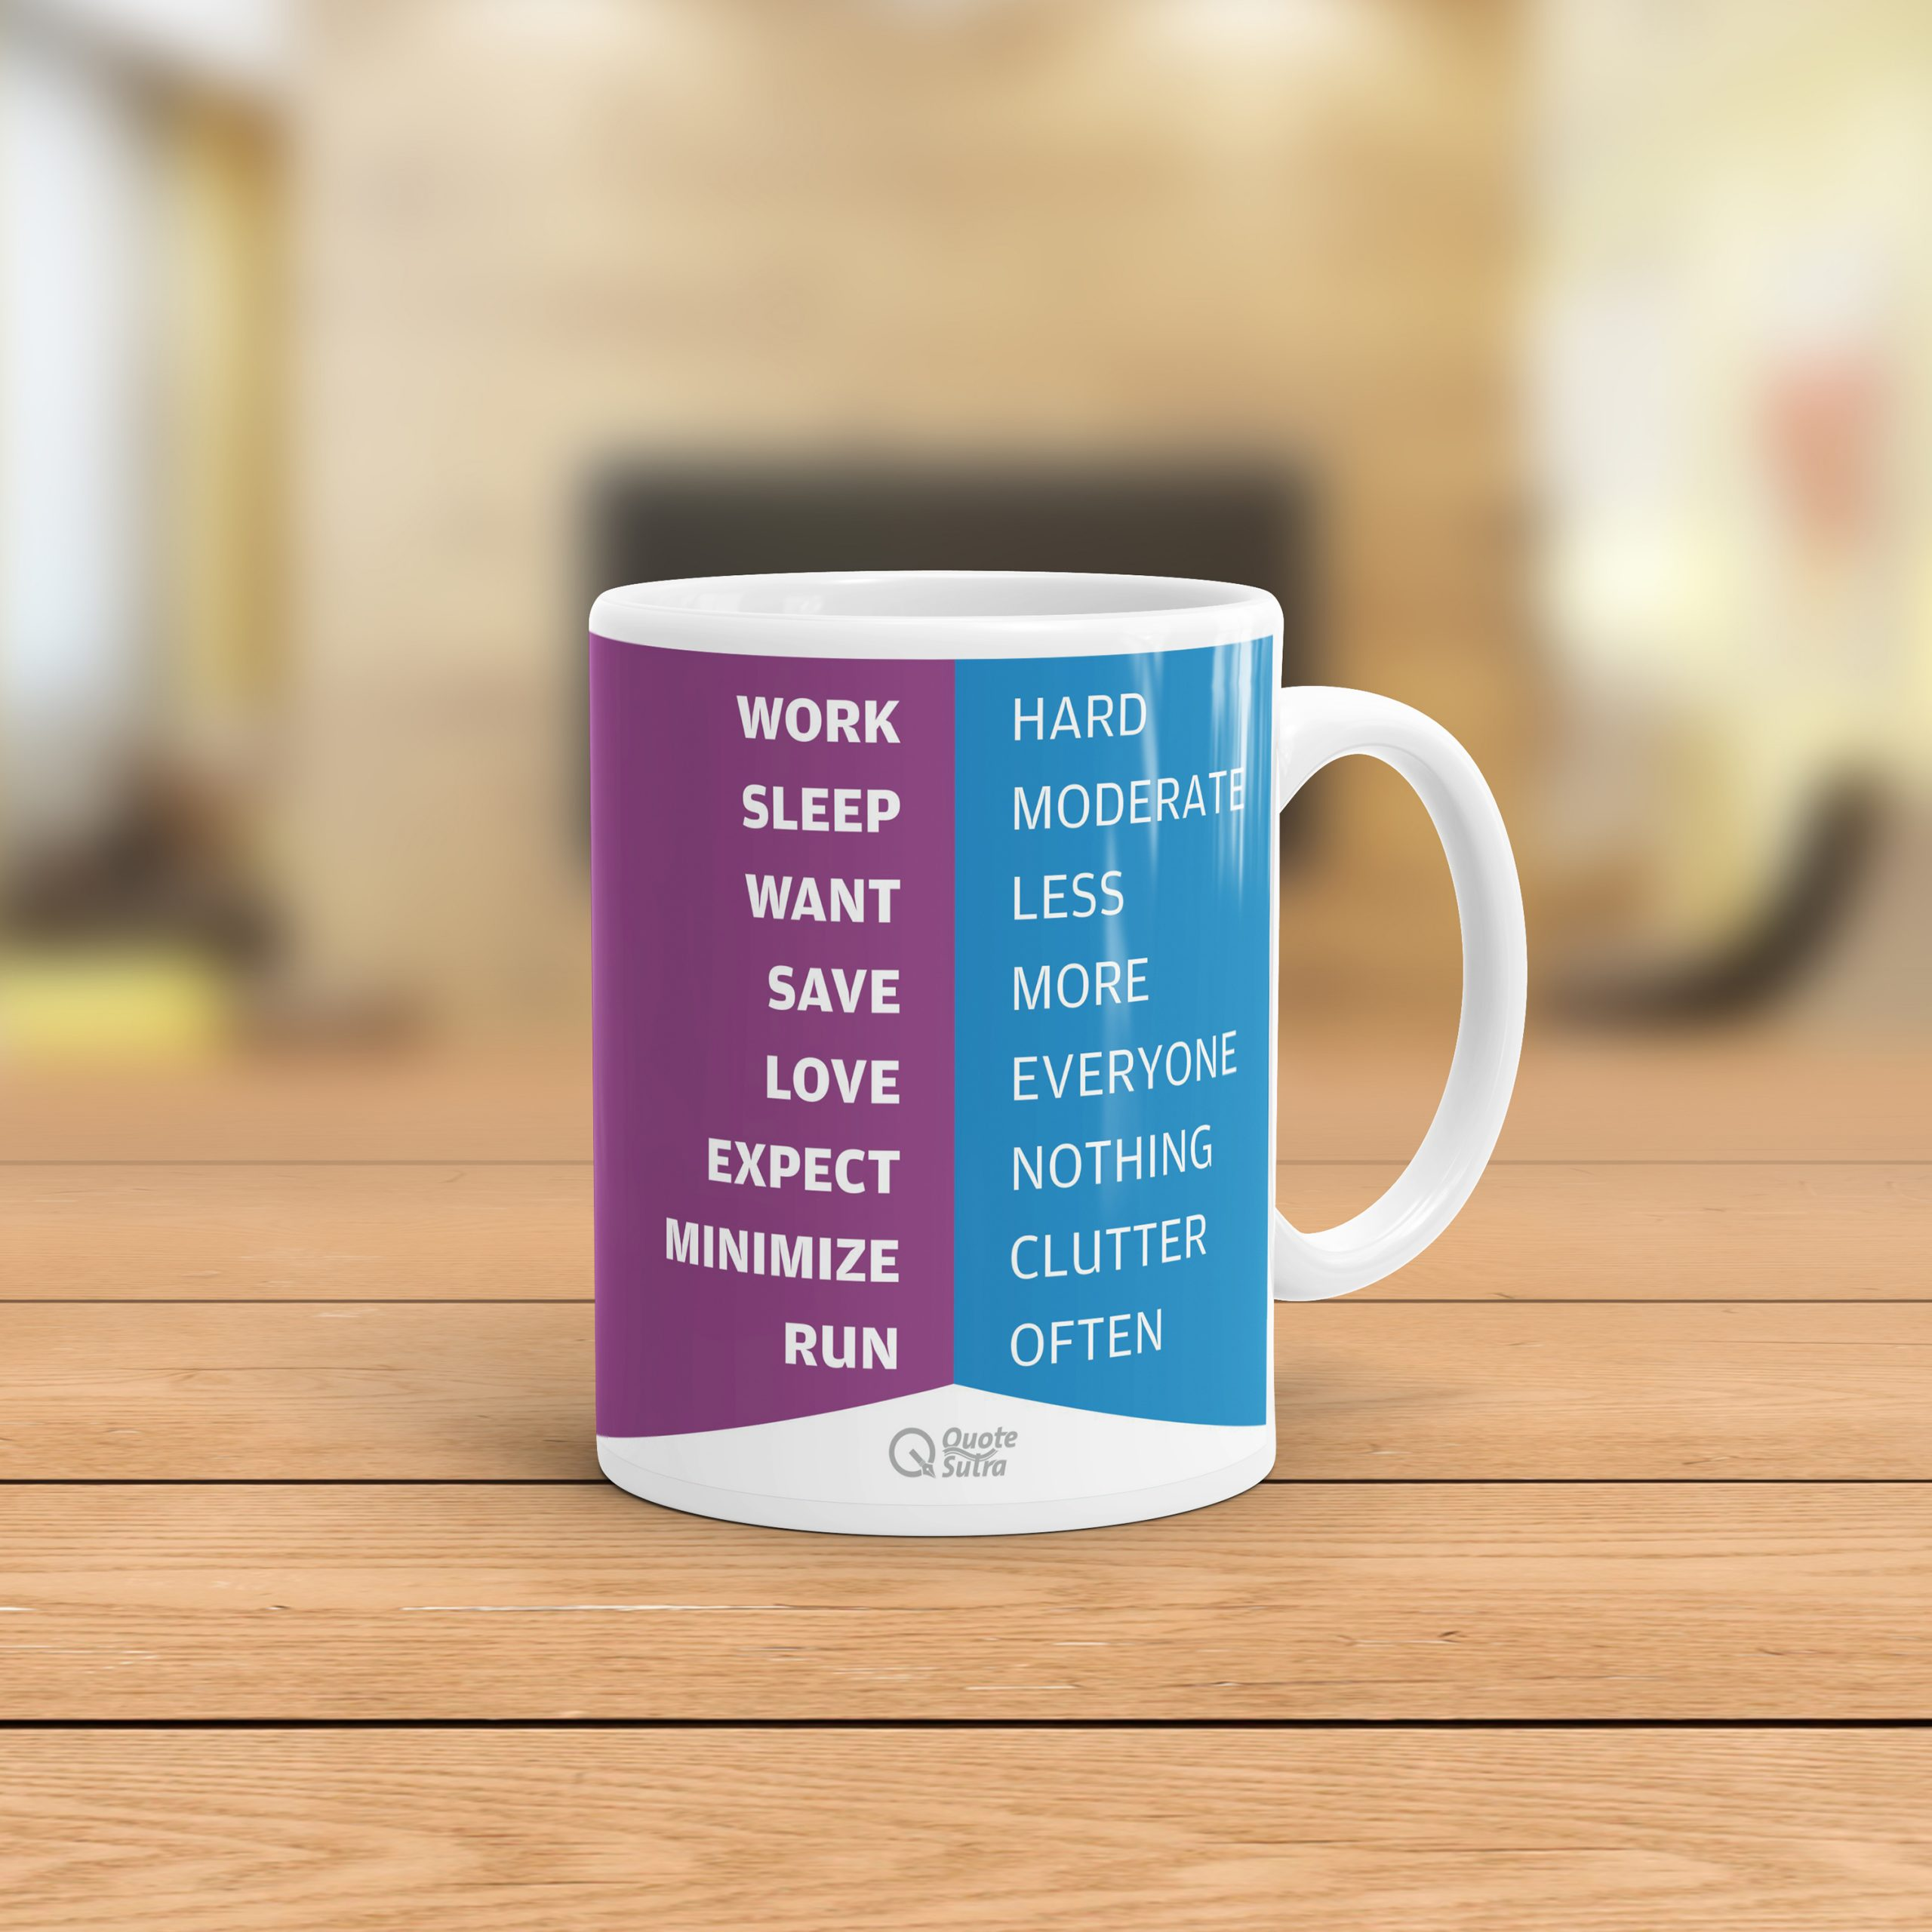 Affirmation, anniversary gift, birthday gift, coffee mug, tea mug, Corporate Gift, Gift idea, inauguration gift, Mug, Office gift, Quote gift, student gift, ceramic mug